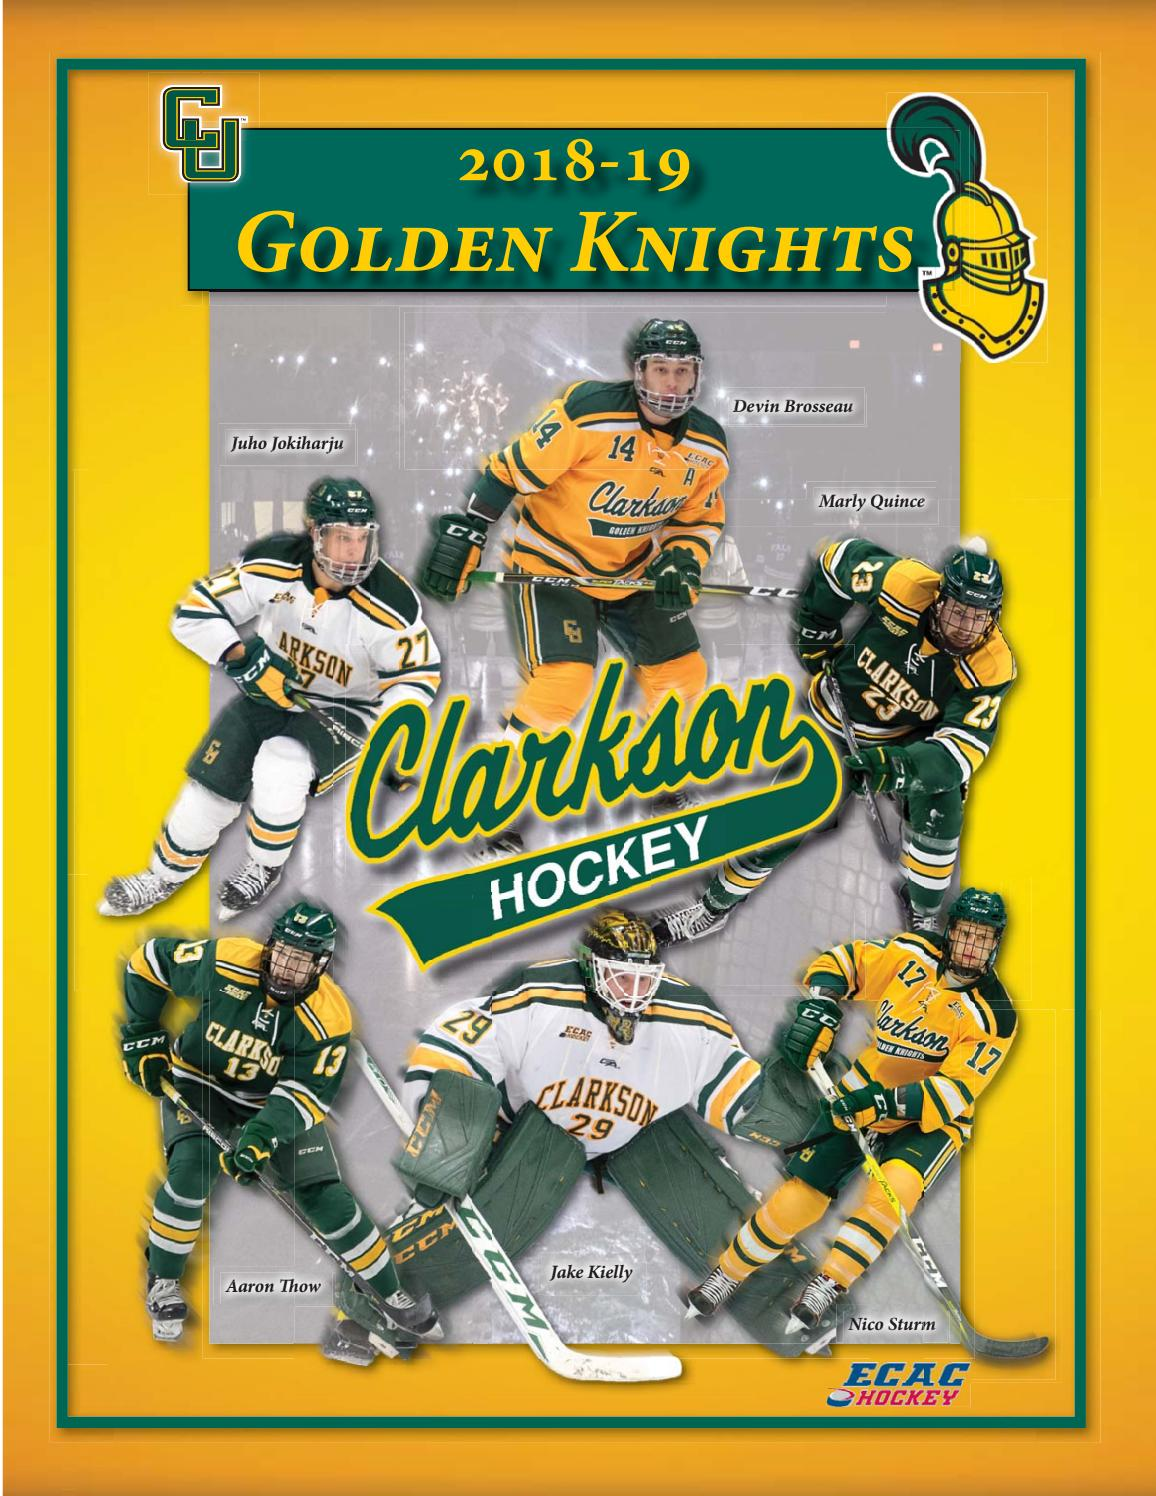 f3c6ba460197 2018-29 Clarkson University Men s Hockey Guide by Gary Mikel - issuu